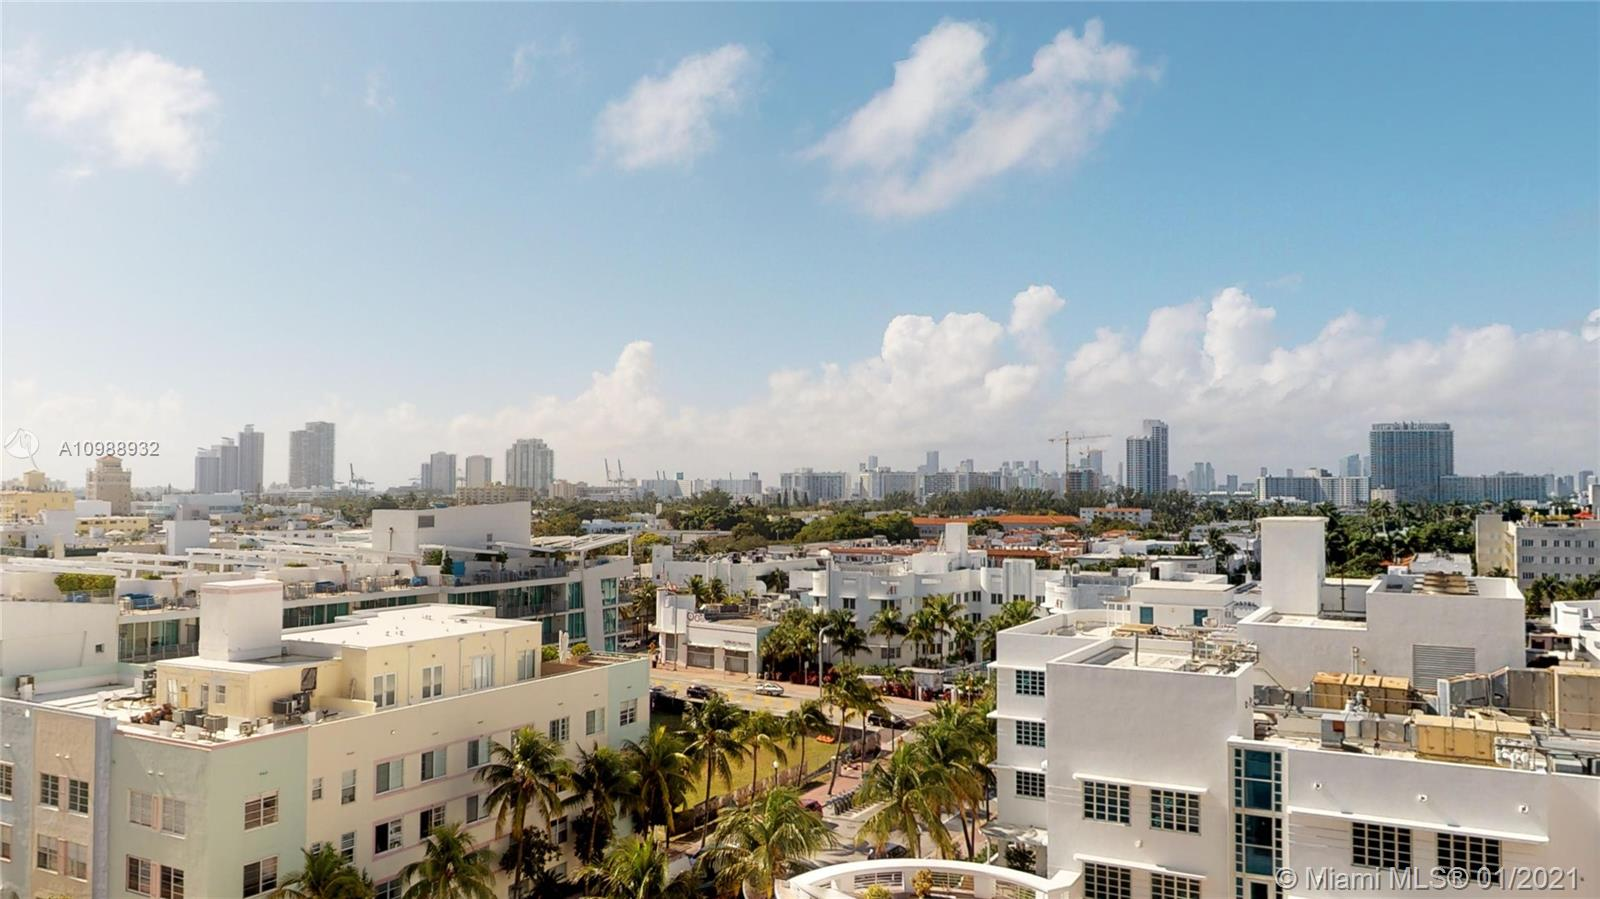 AVAILABLE APRIL 1, 2021. Delightful, fully furnished 1 bedroom / 2 bathrooms at Michael Graves. This spacious oceanfront condo has terrazzo floors throughout, luxury kitchen and glamorous TUI decor. 1500 Ocean Drive offers 5-star amenities including full-time concierge service, 24-hour valet, state-of-the-art fitness center, beach and pool services, complimentary wireless Internet connections, among others. Walk to restaurants, clubs, Ocean Drive, Lincoln Road, and more.